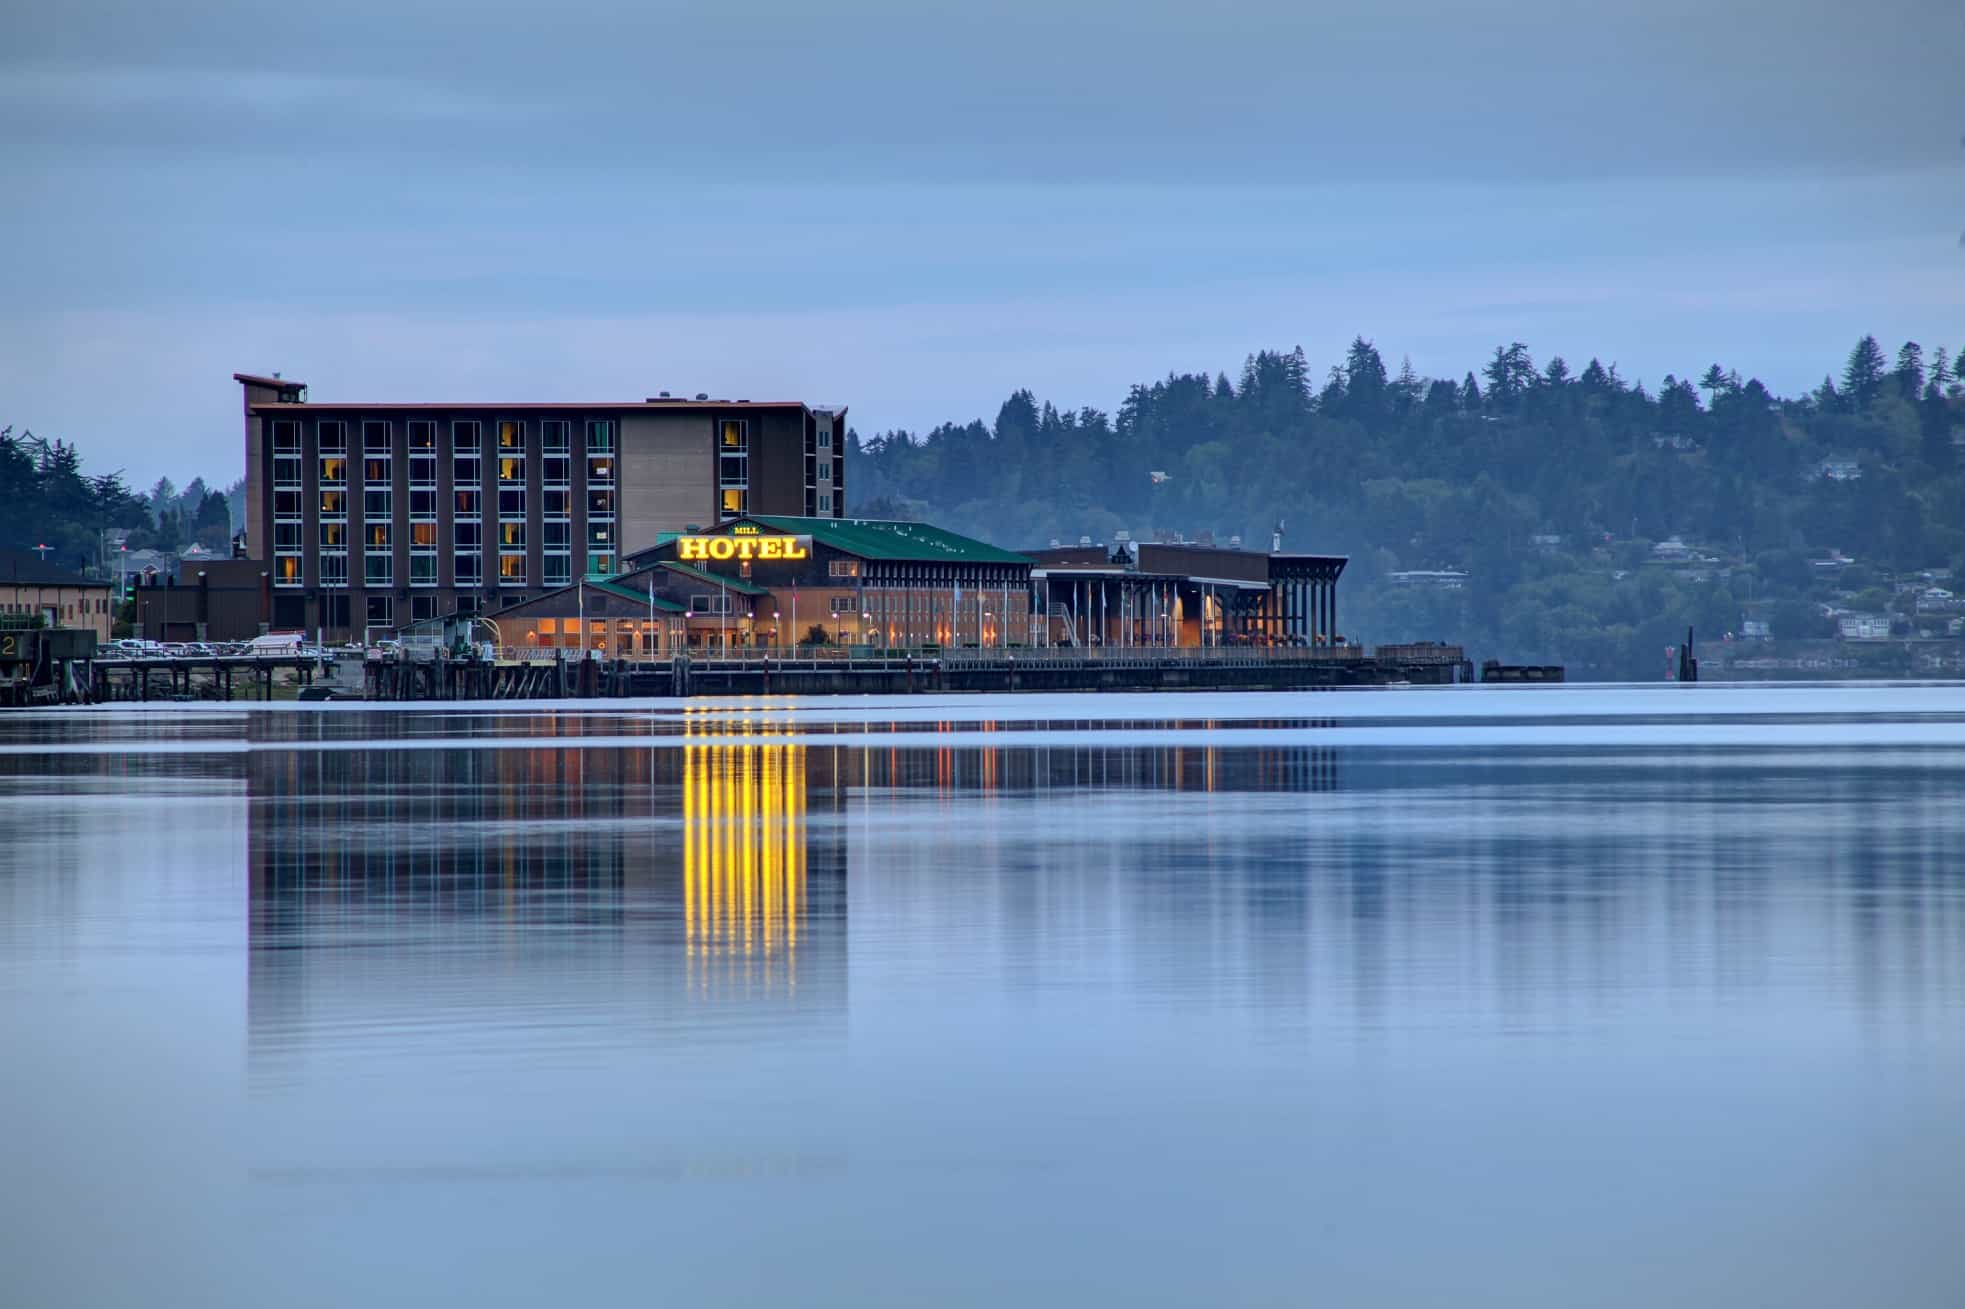 The Mill Casino hotel exterior from across the bay